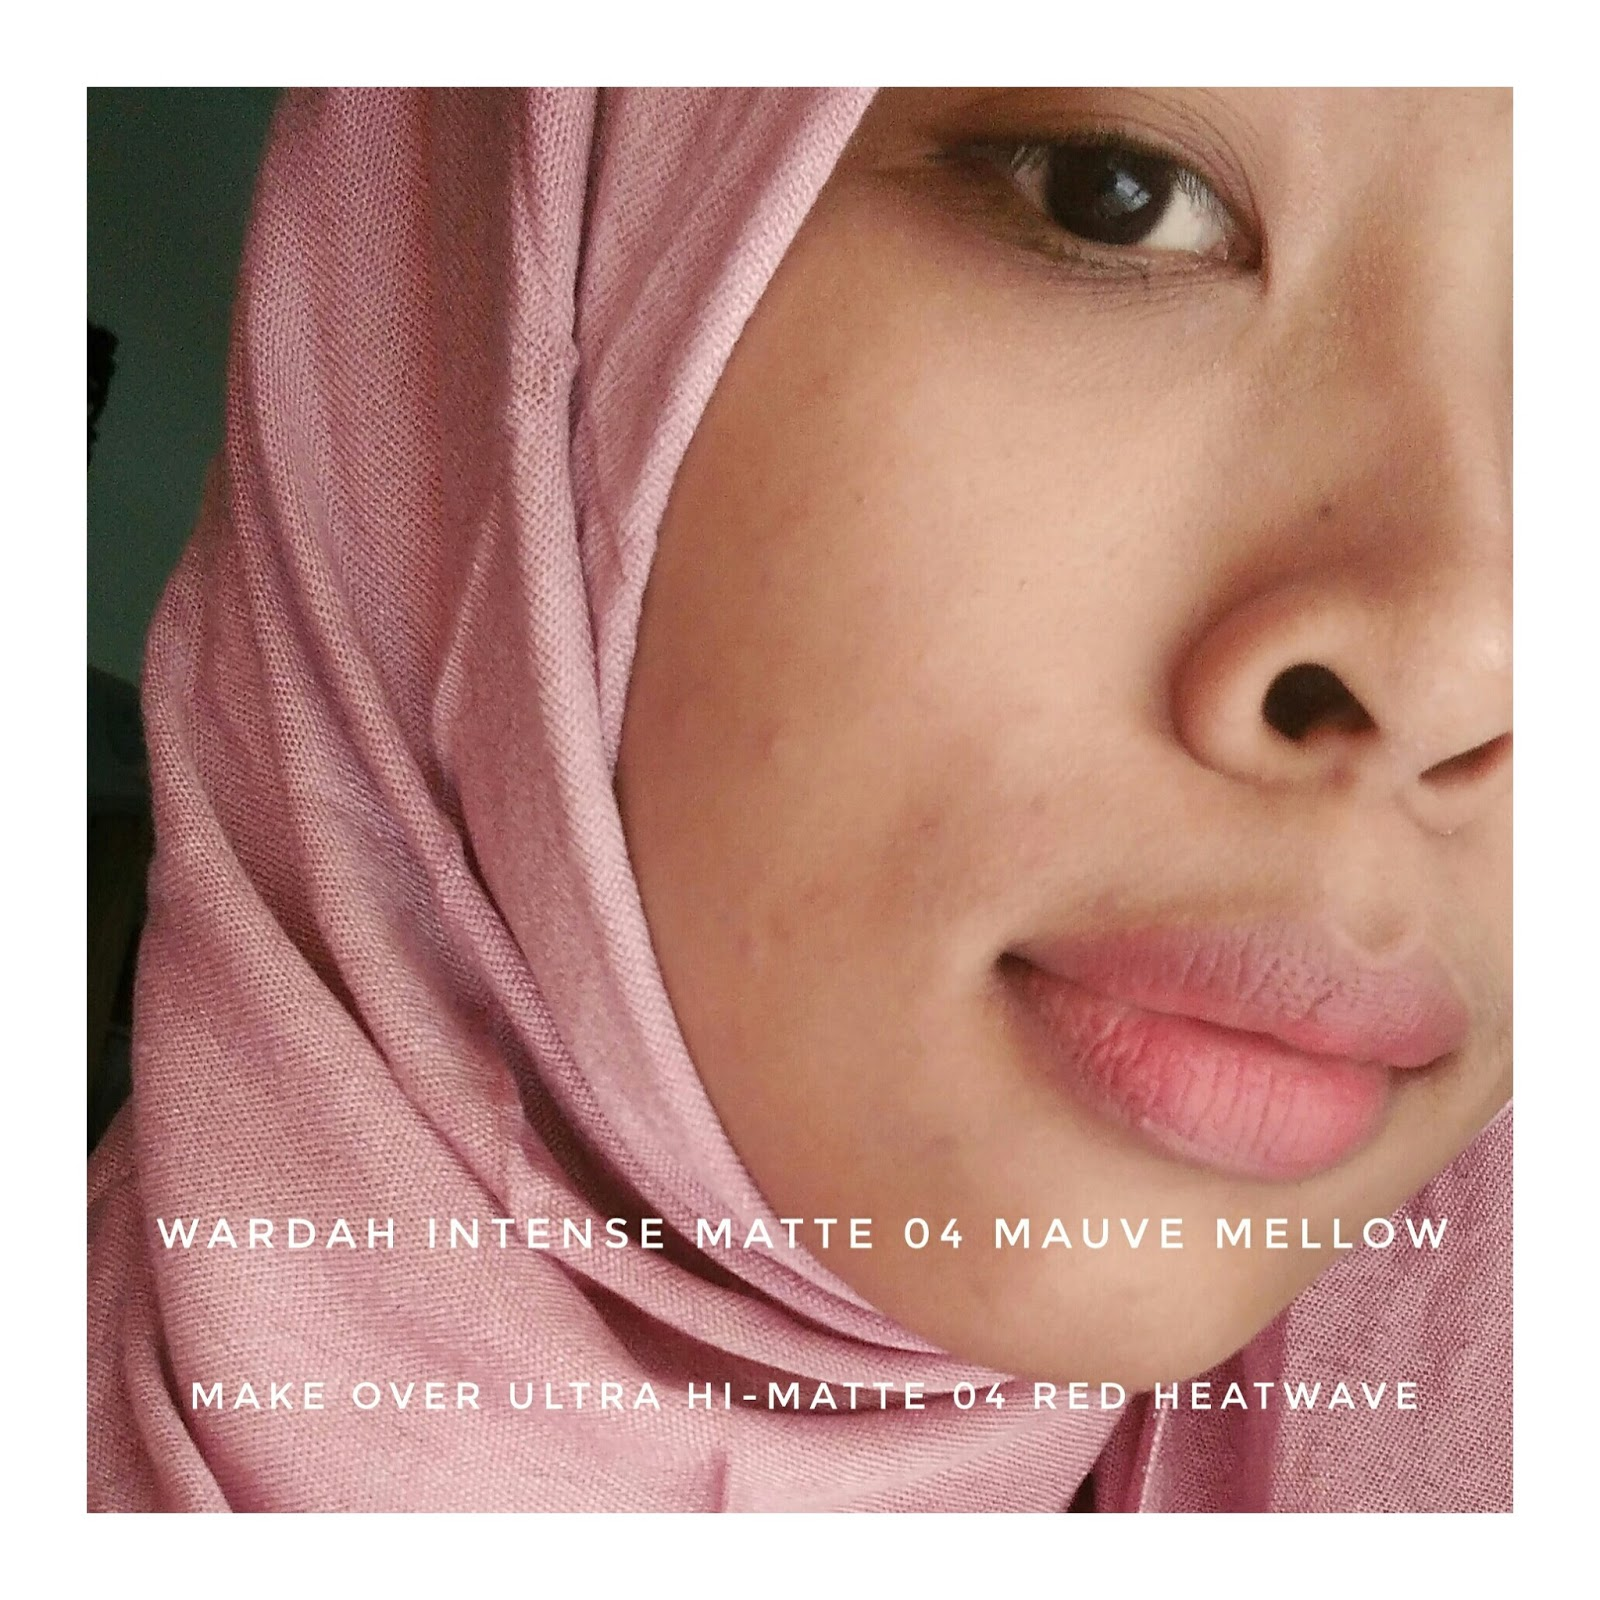 Wardah Intense Matte 04 Mauve Mellow